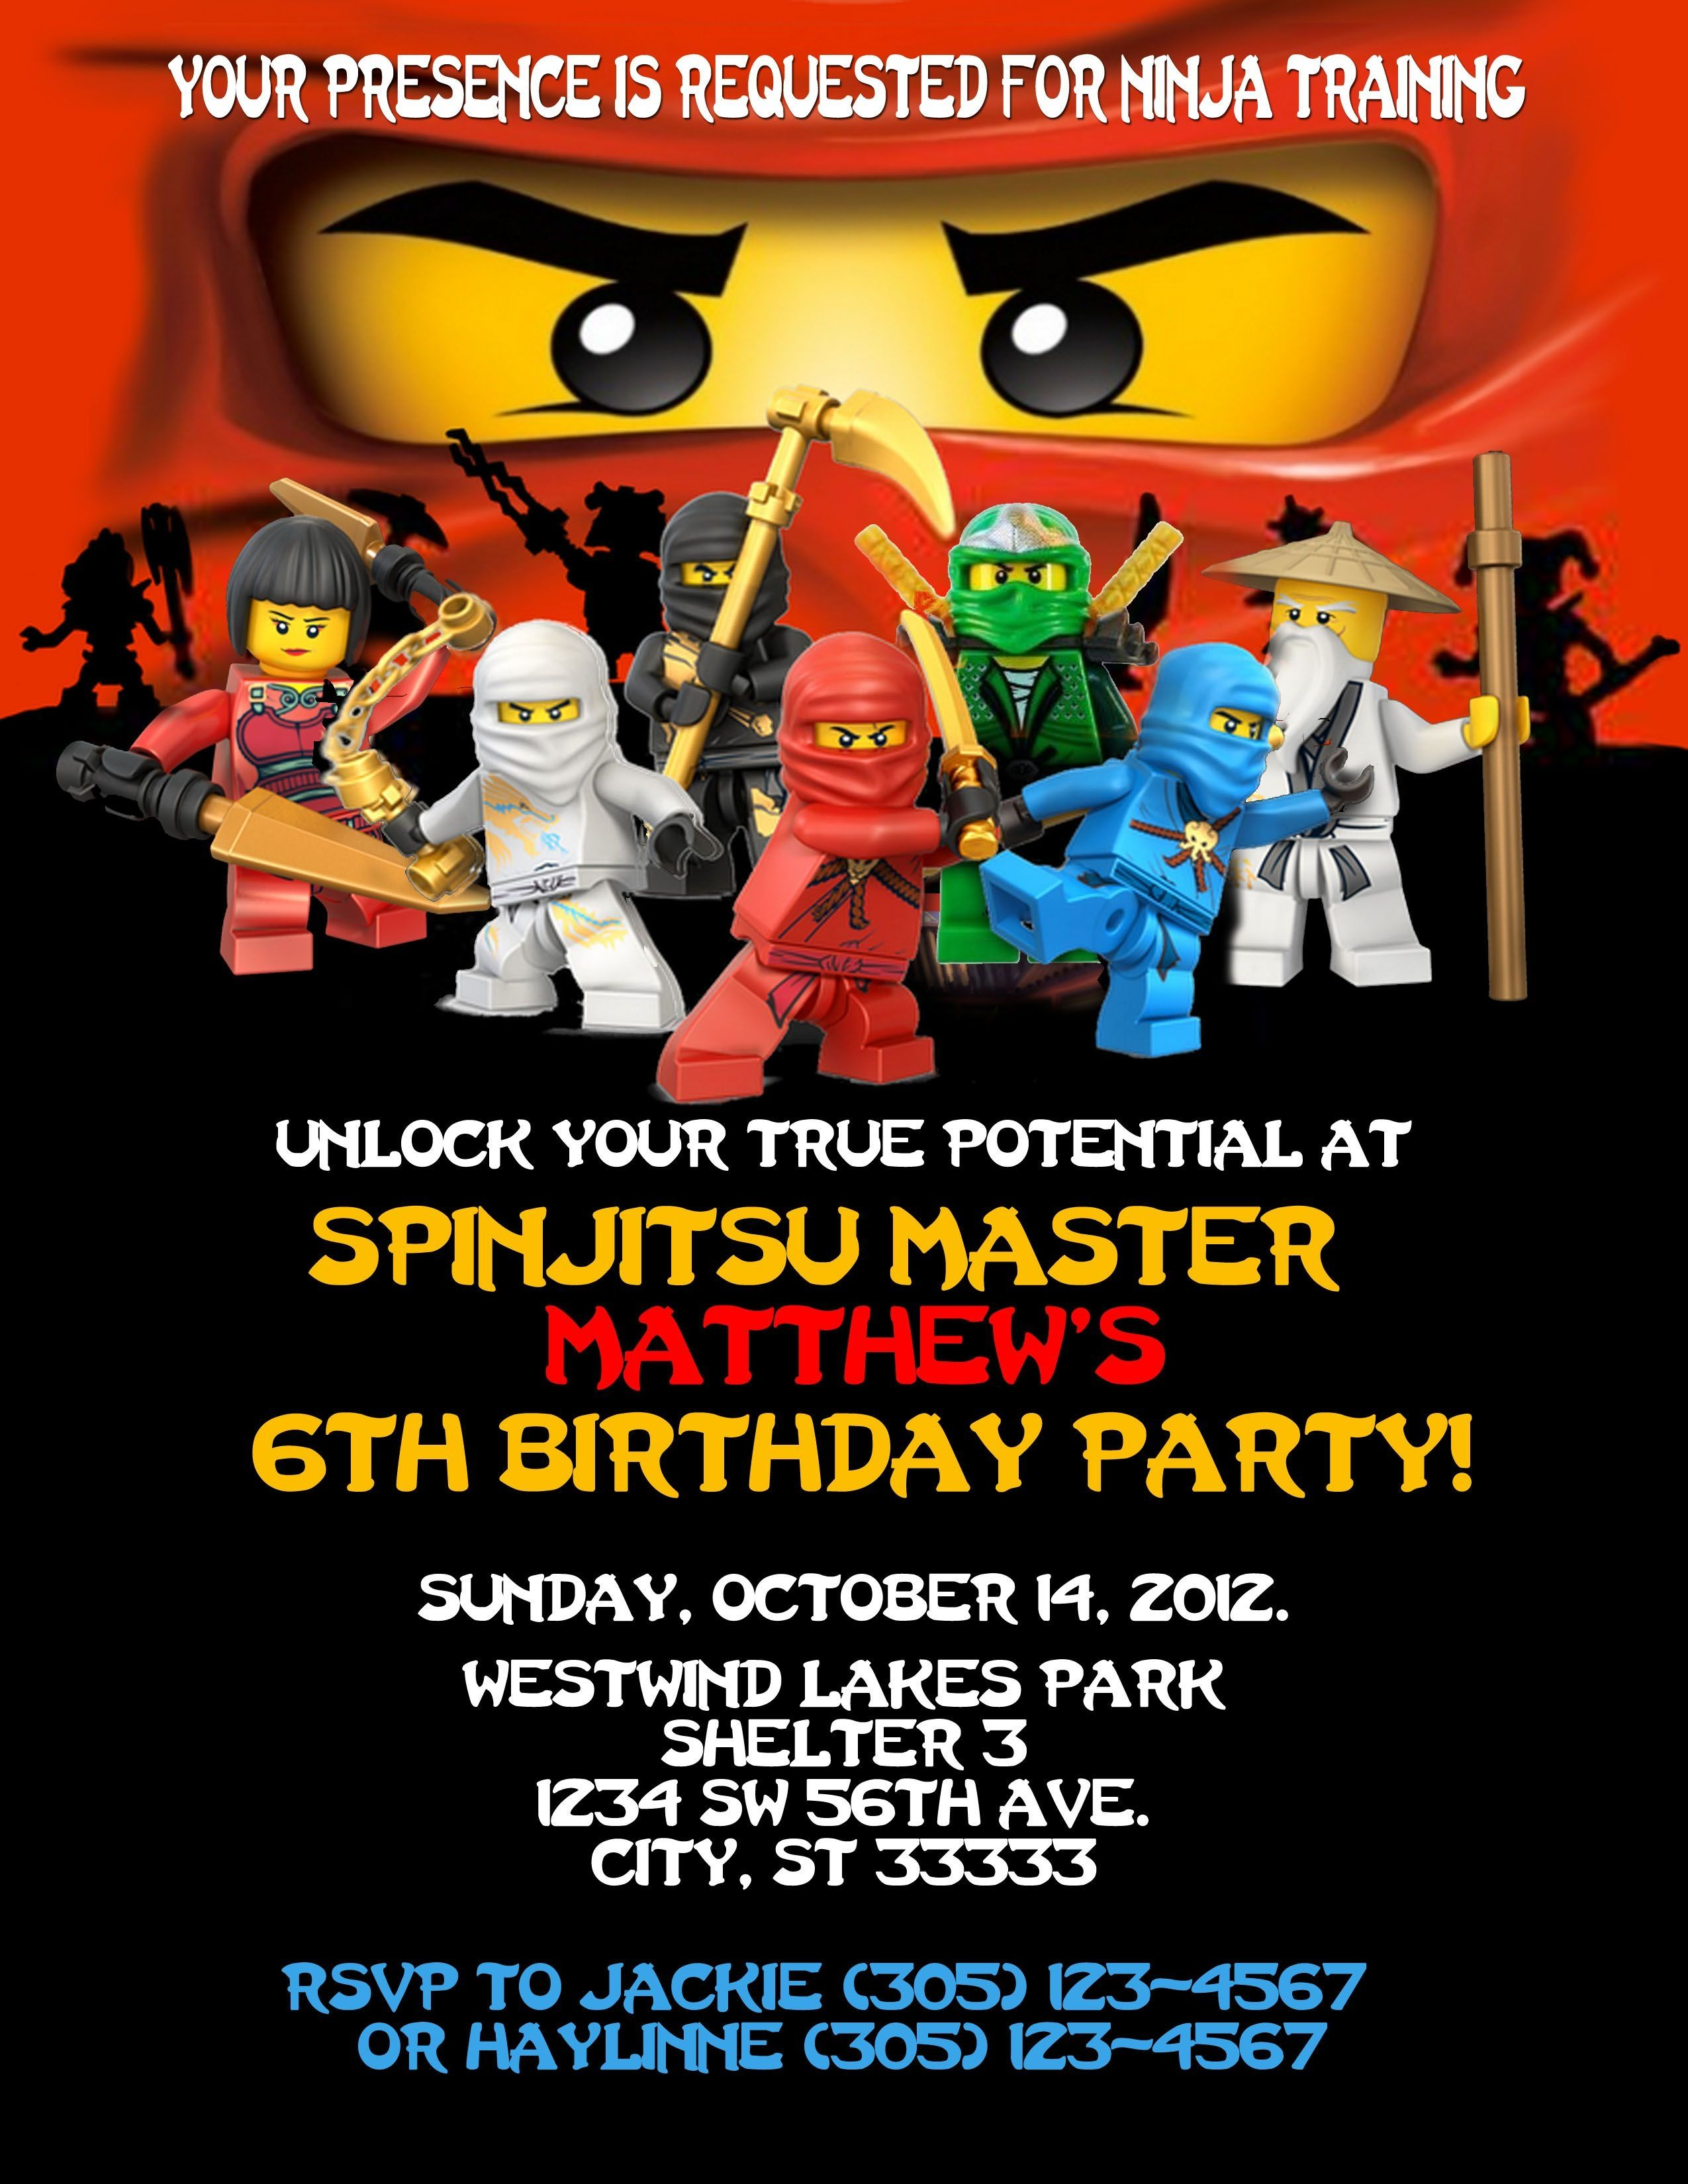 ninjago birthday invitation created on photoshop can Design 5